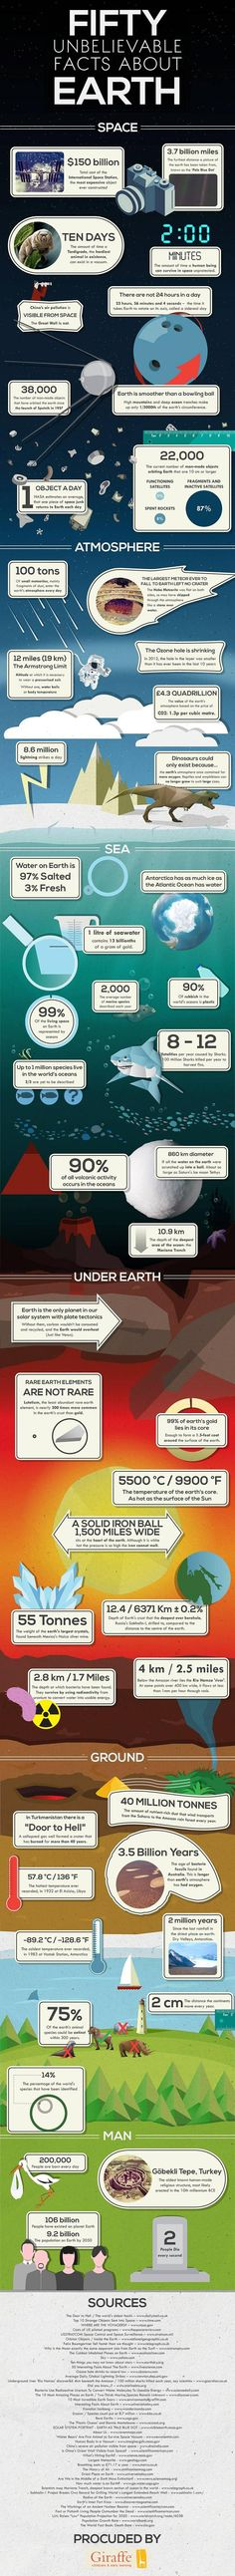 50 Crazy Facts About Earth